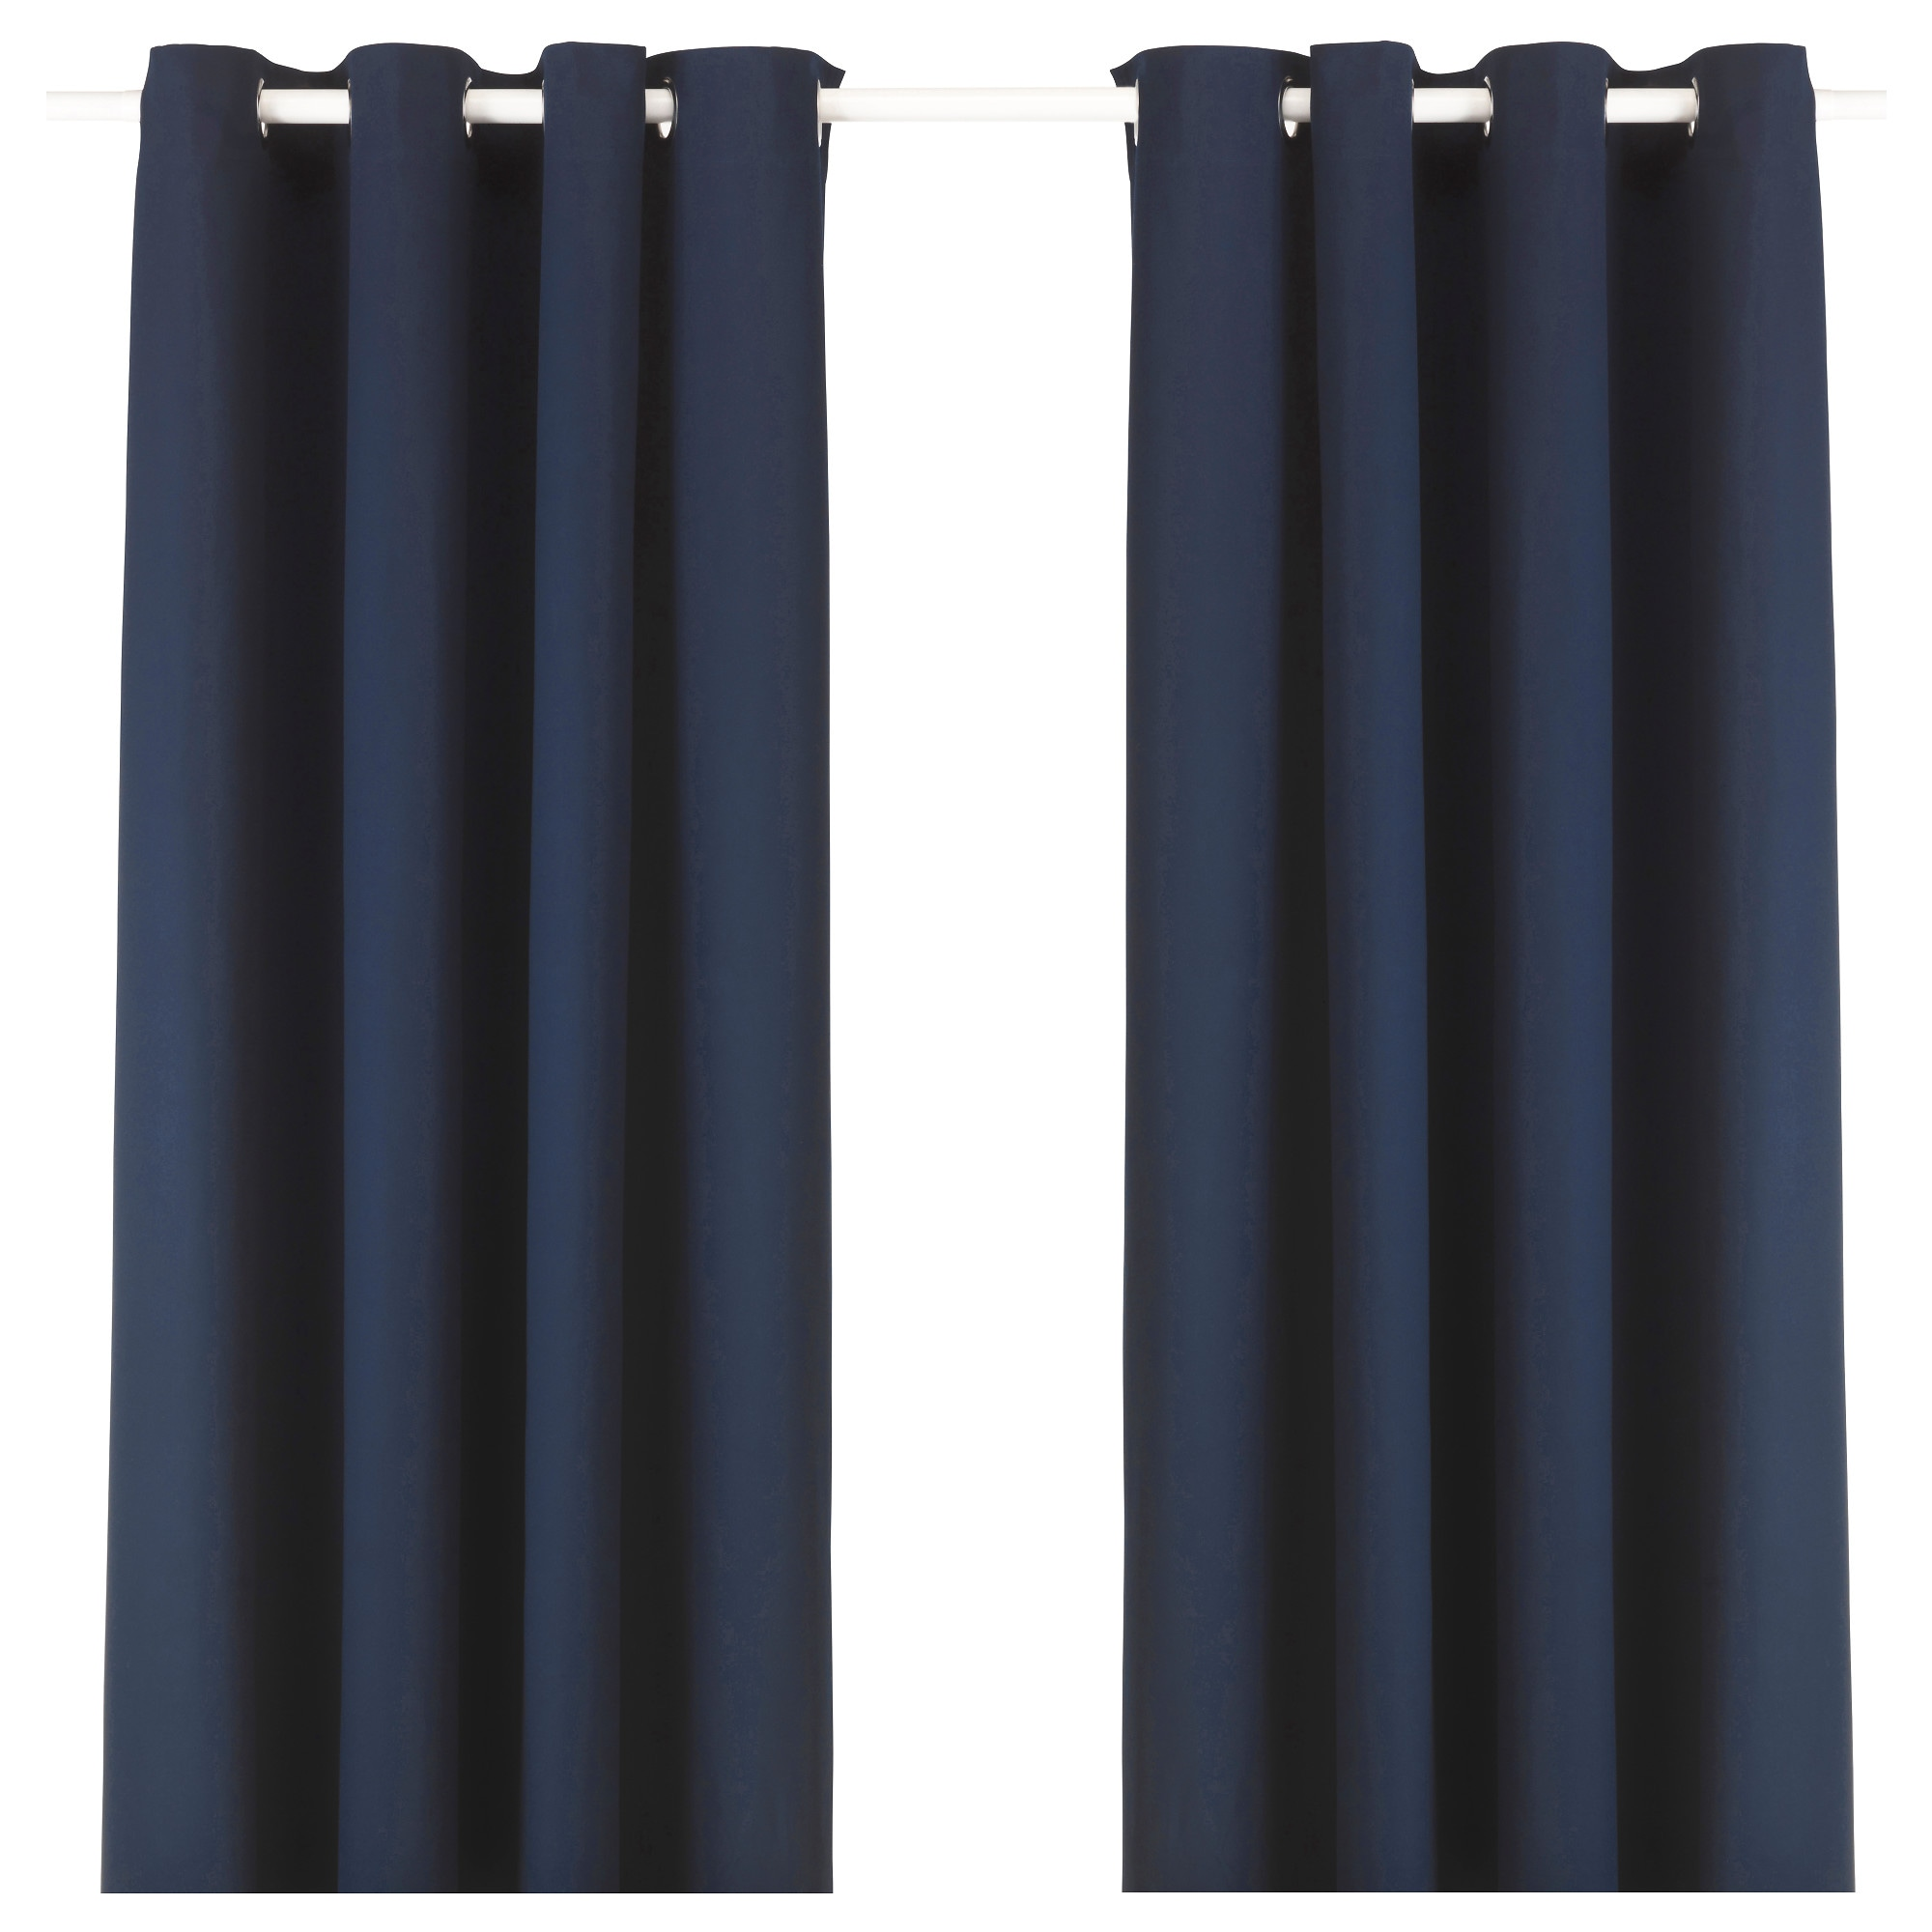 design curtains for living room. MERETE curtains  1 pair Curtains Living Room Bedroom IKEA